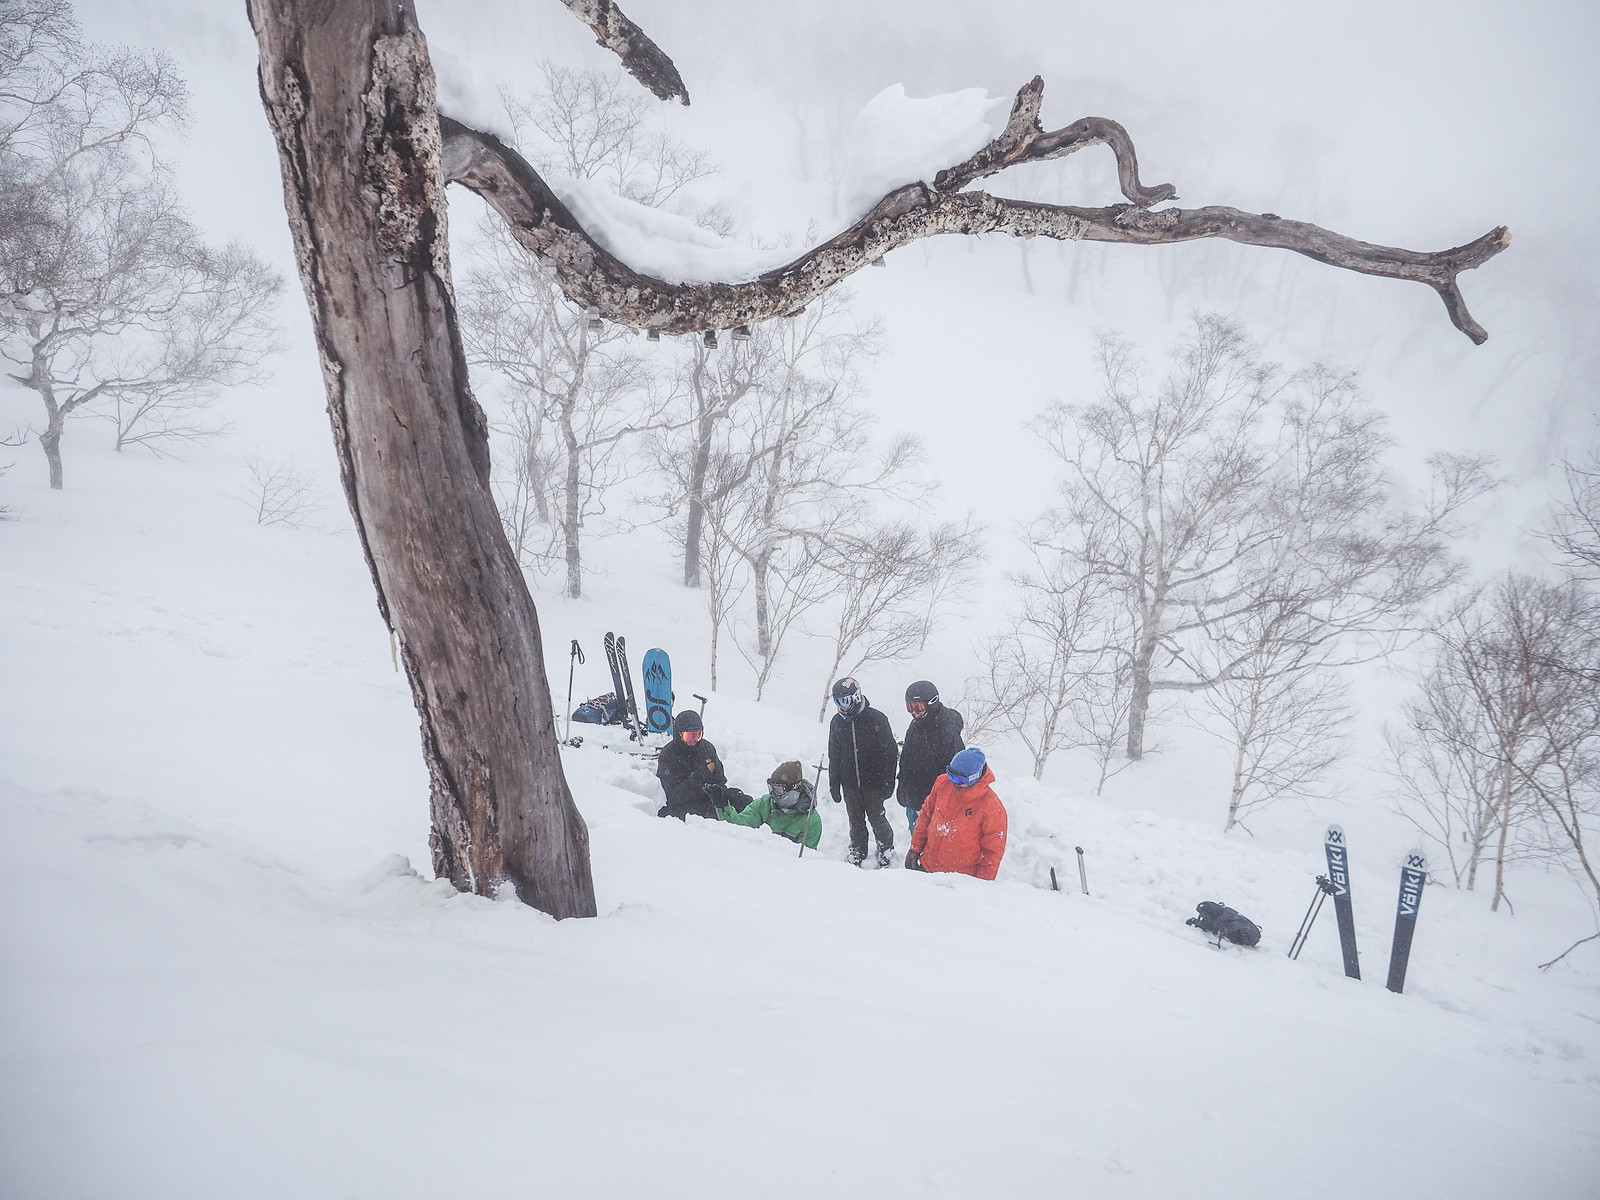 Whiteroom Tours AST2 Avalanche Safety Training Course (Niseko, Hokkaido, Japan)